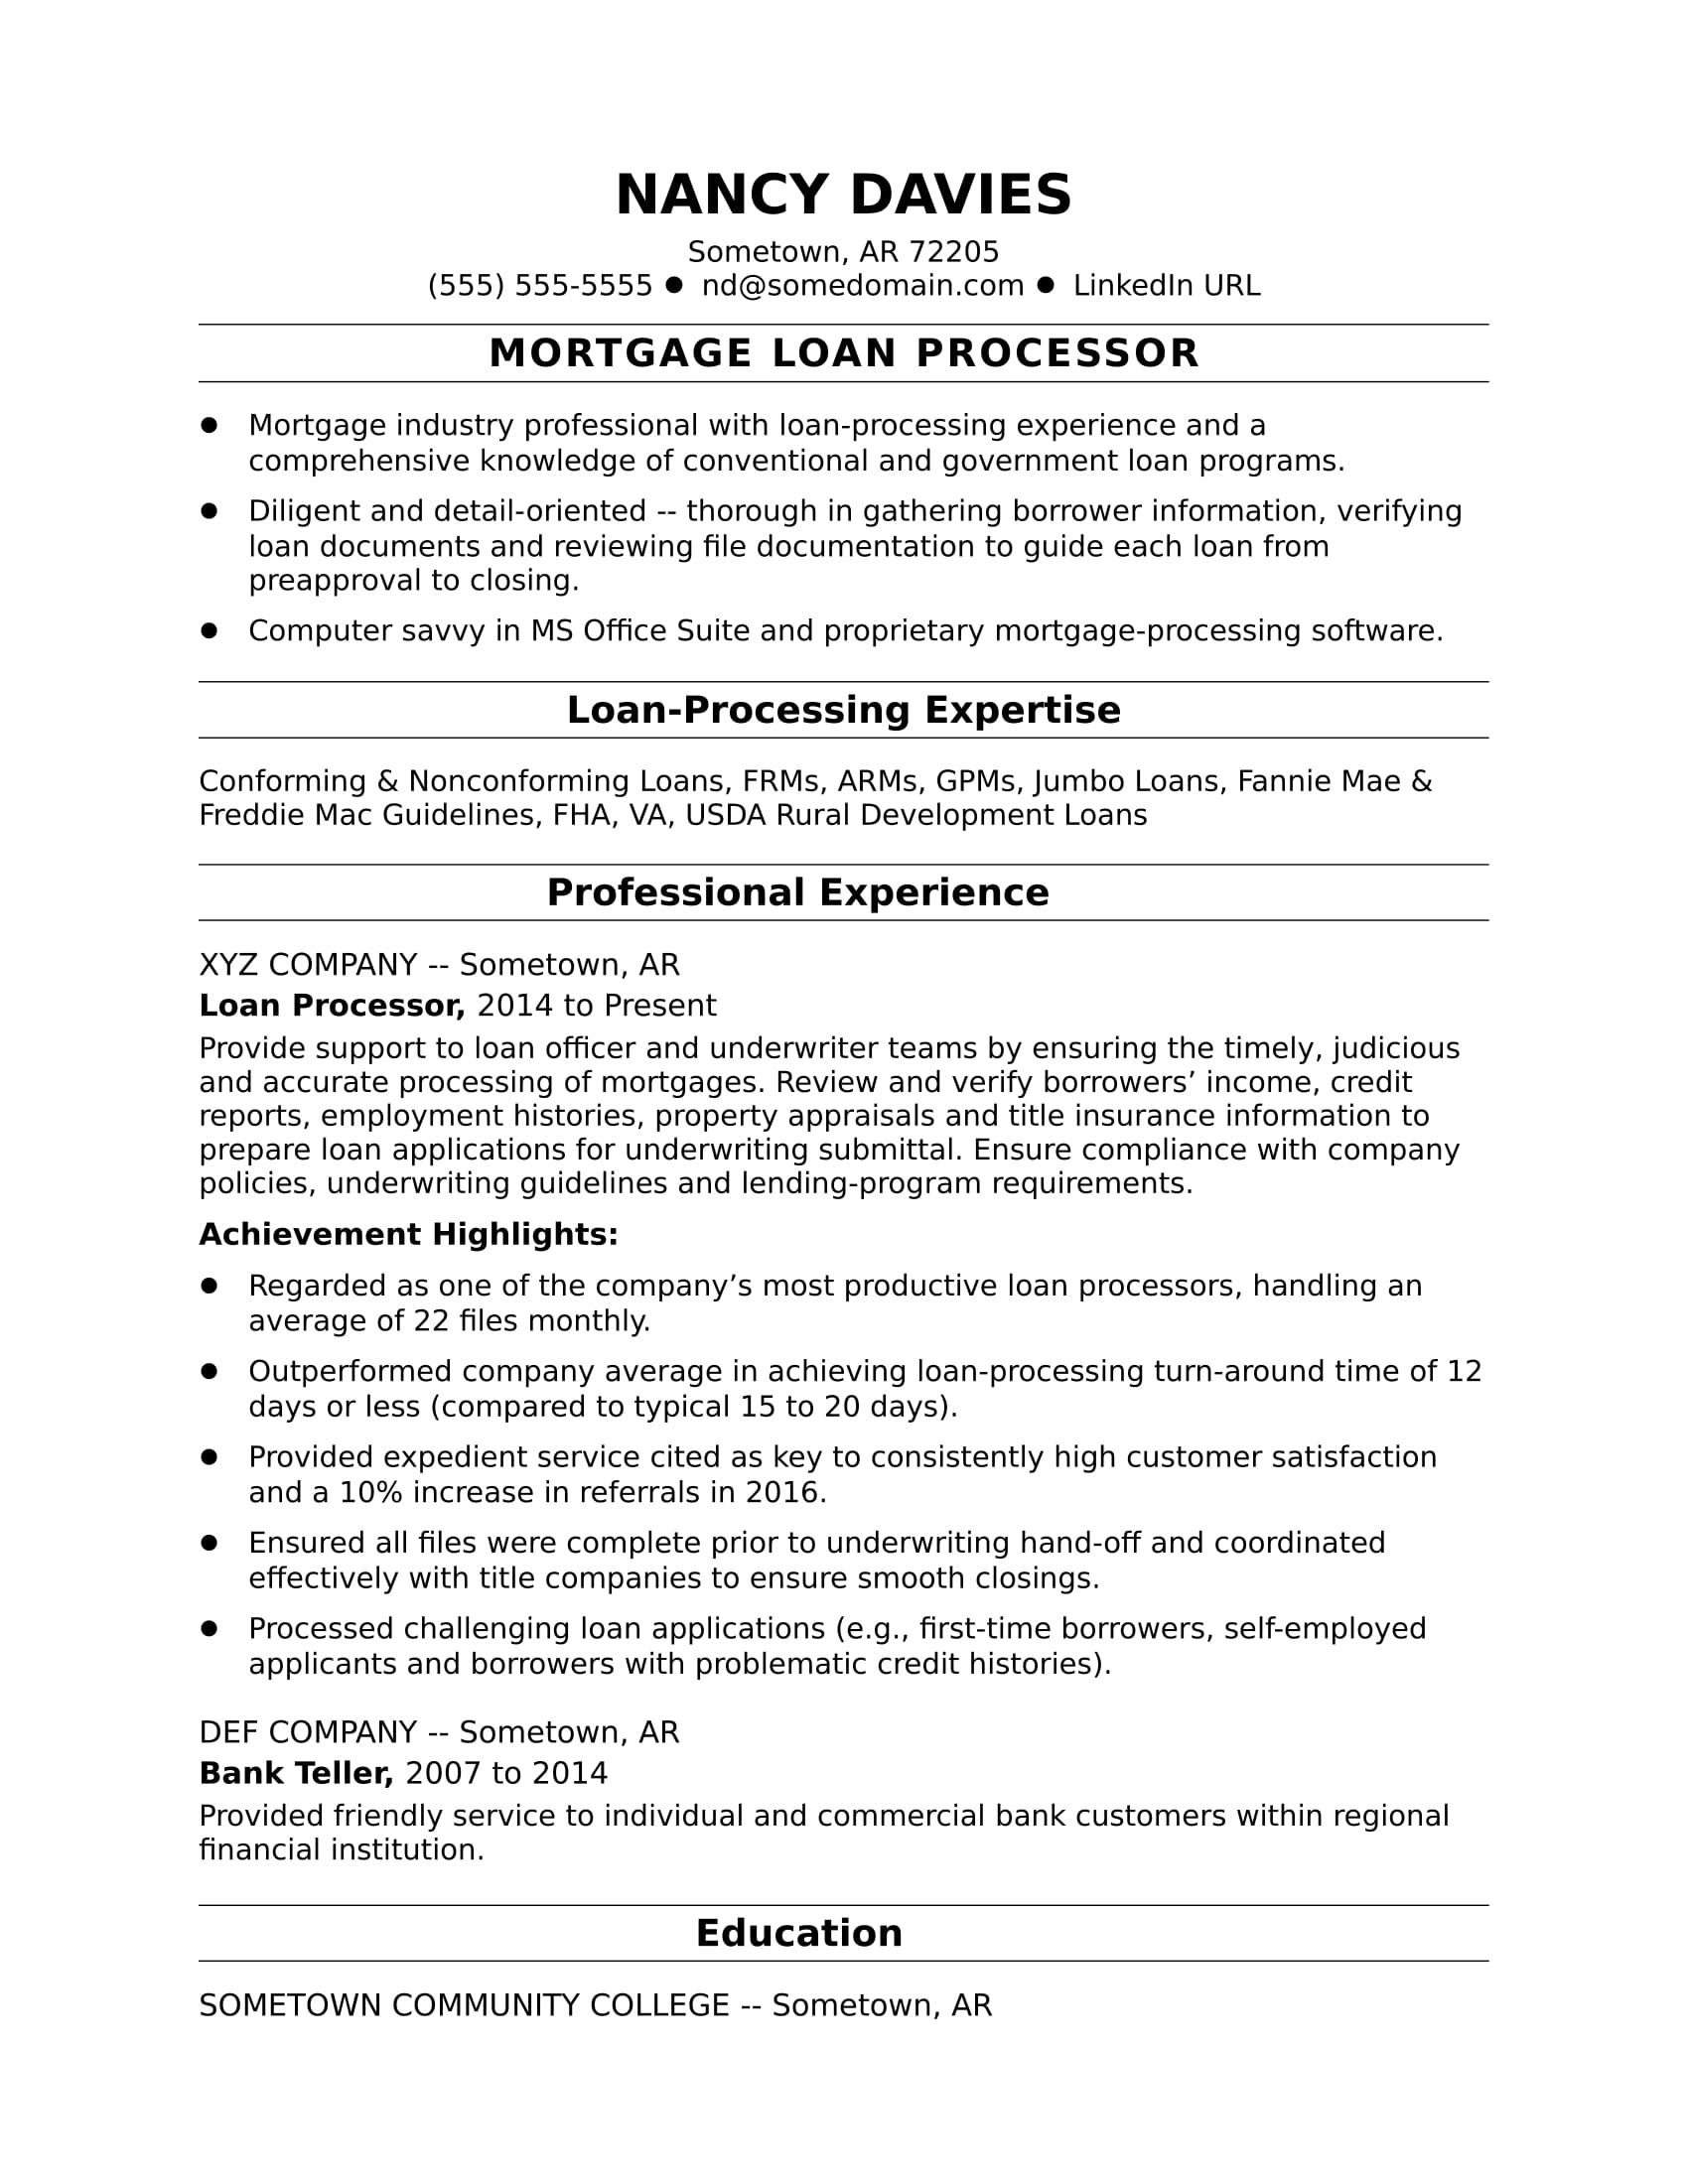 Does your resume demonstrate how accurately and efficiently you process loans If not borrow ideas from this sample resume for a mortgage loan processor